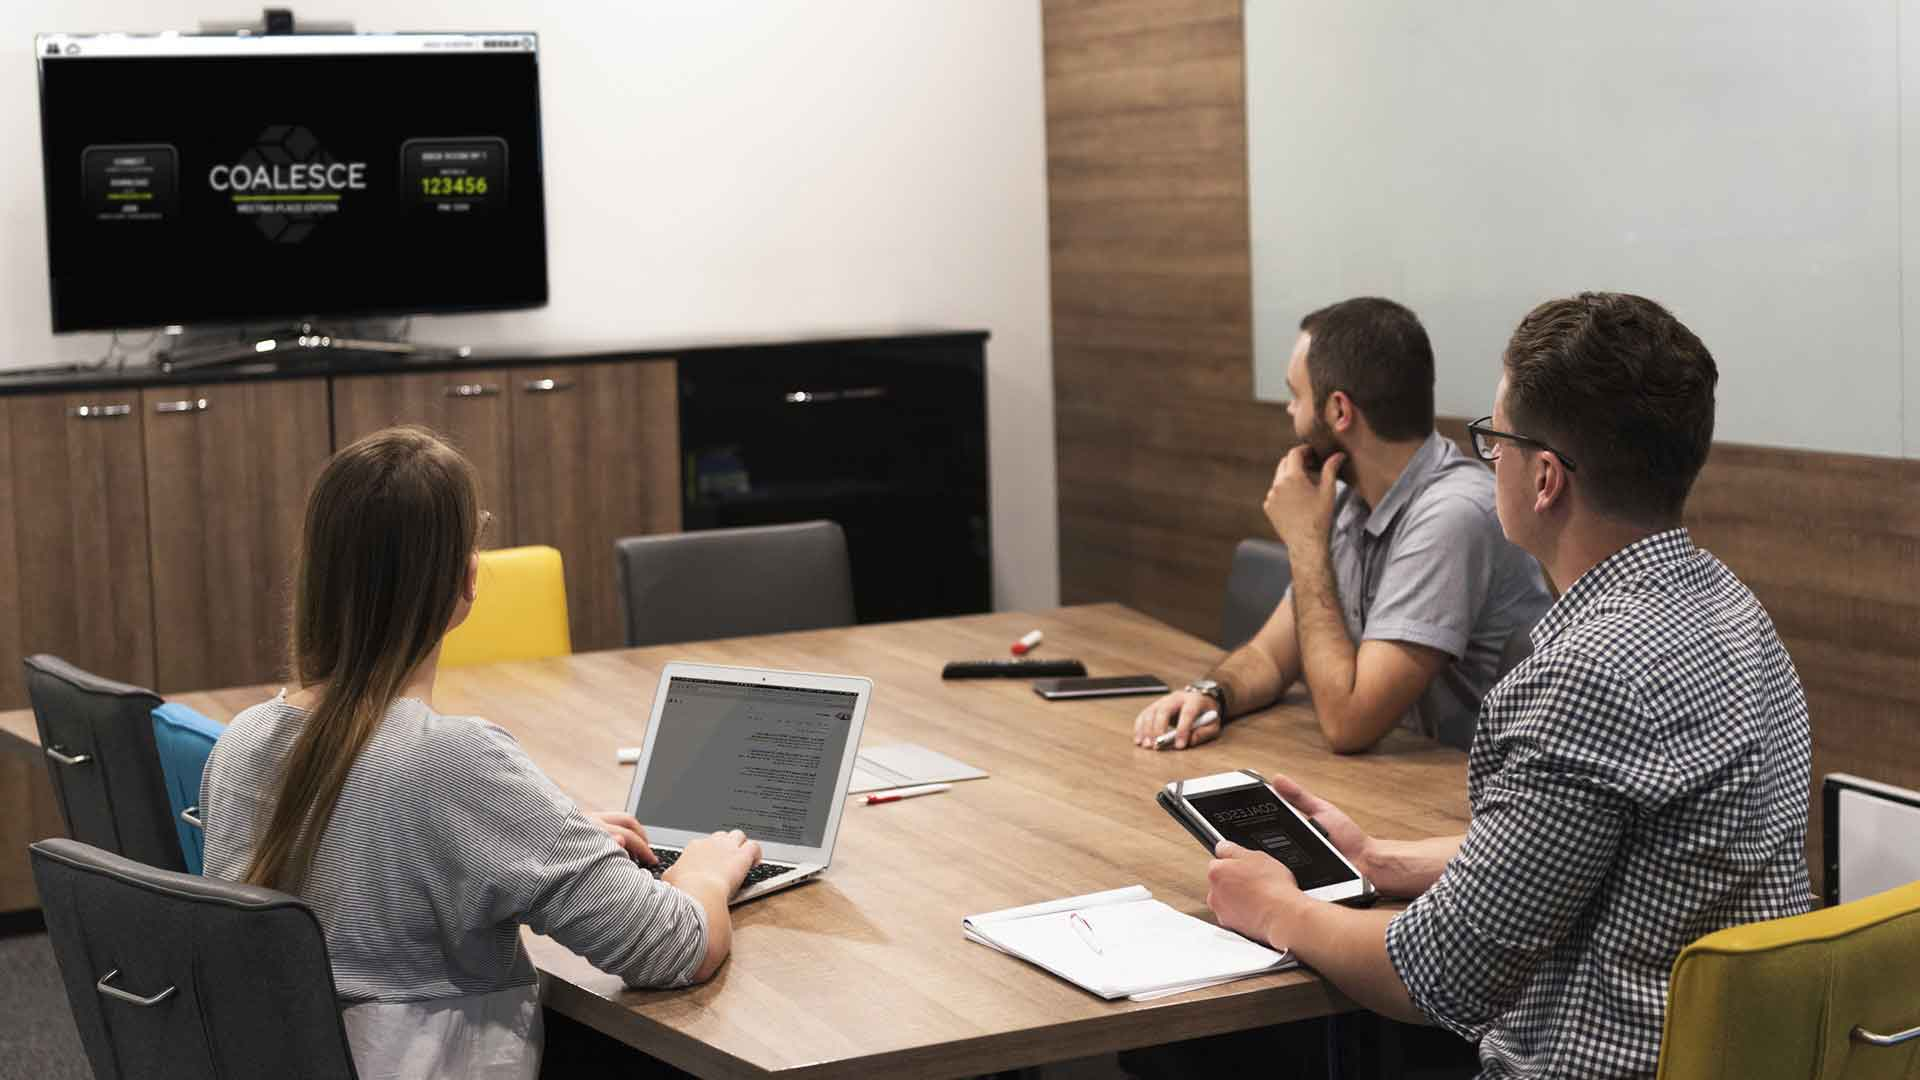 COALESCE™ MPE - Wireless Presentation & Collaboration System